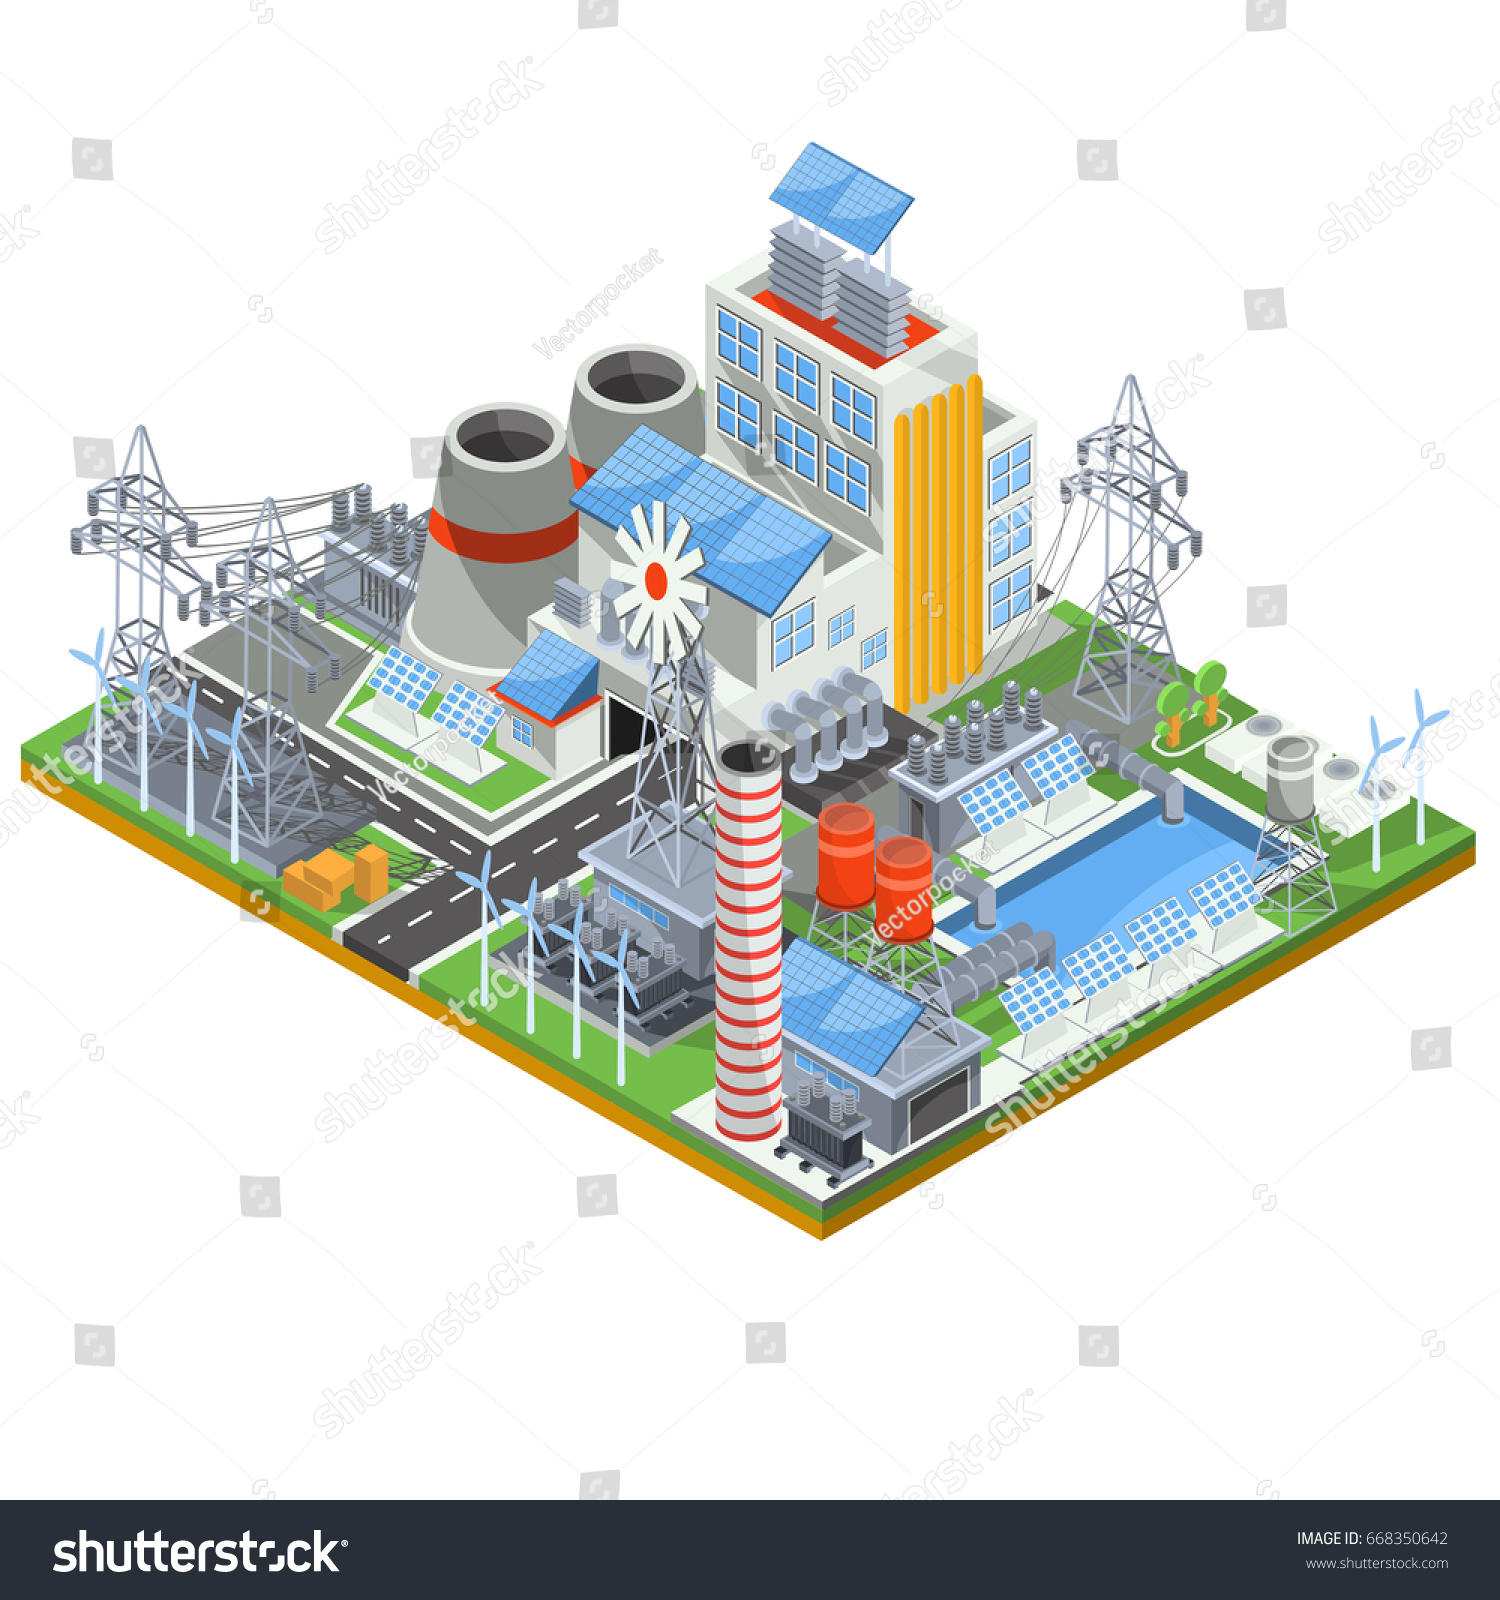 hight resolution of isometric illustration of a thermal thermal power plant running on alternative sources of energy the